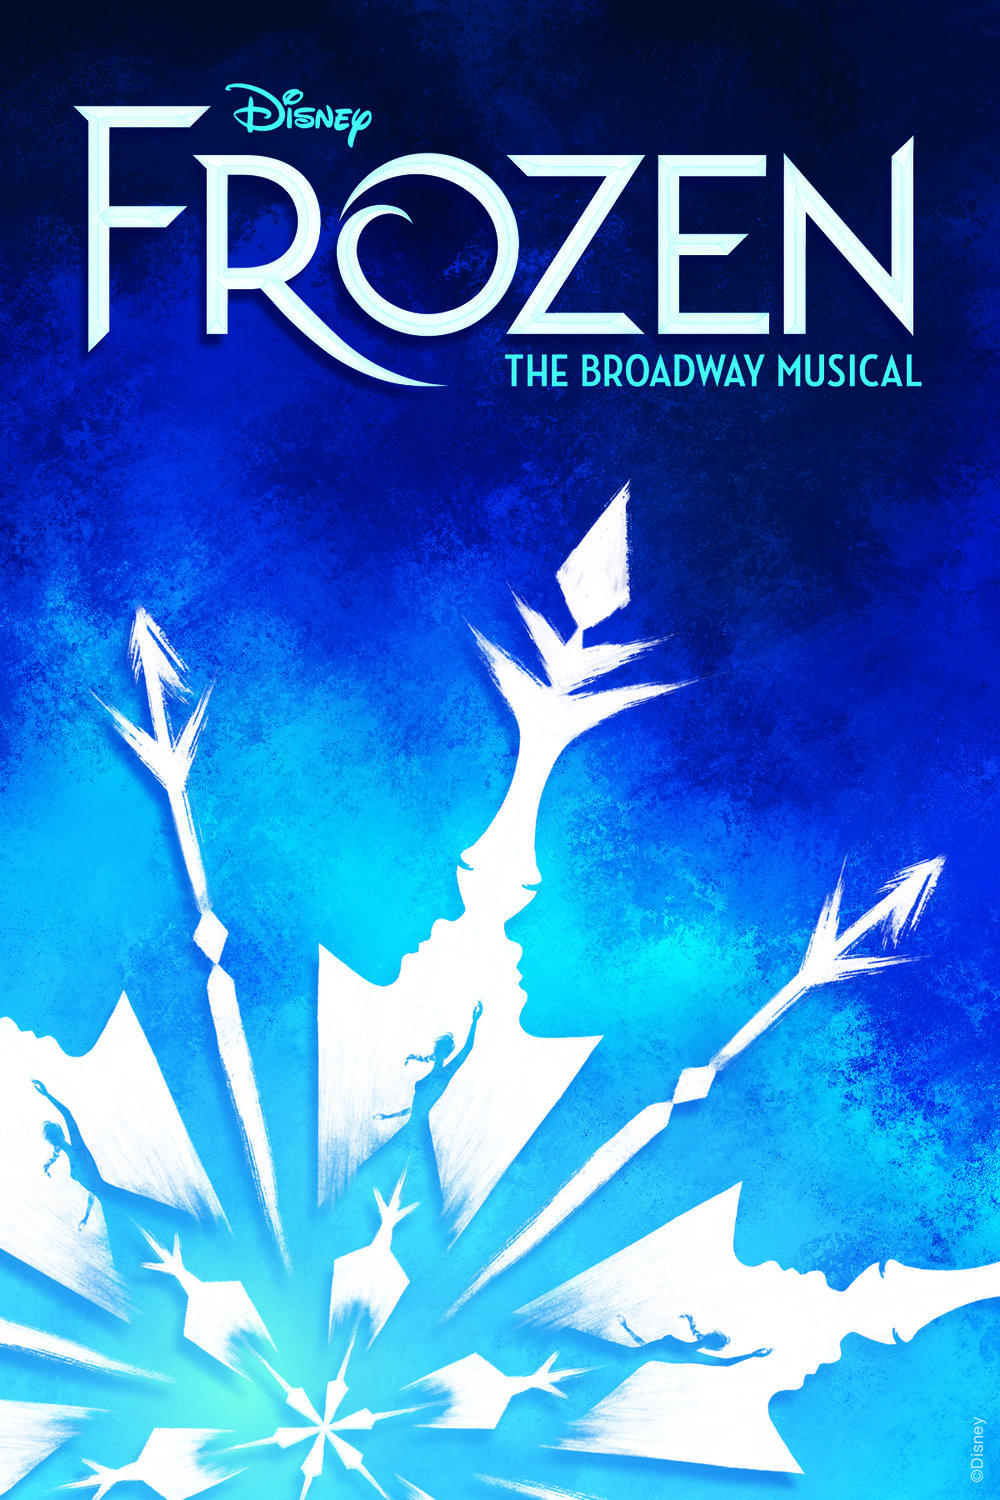 Credits: frozenthemusical.com #disney